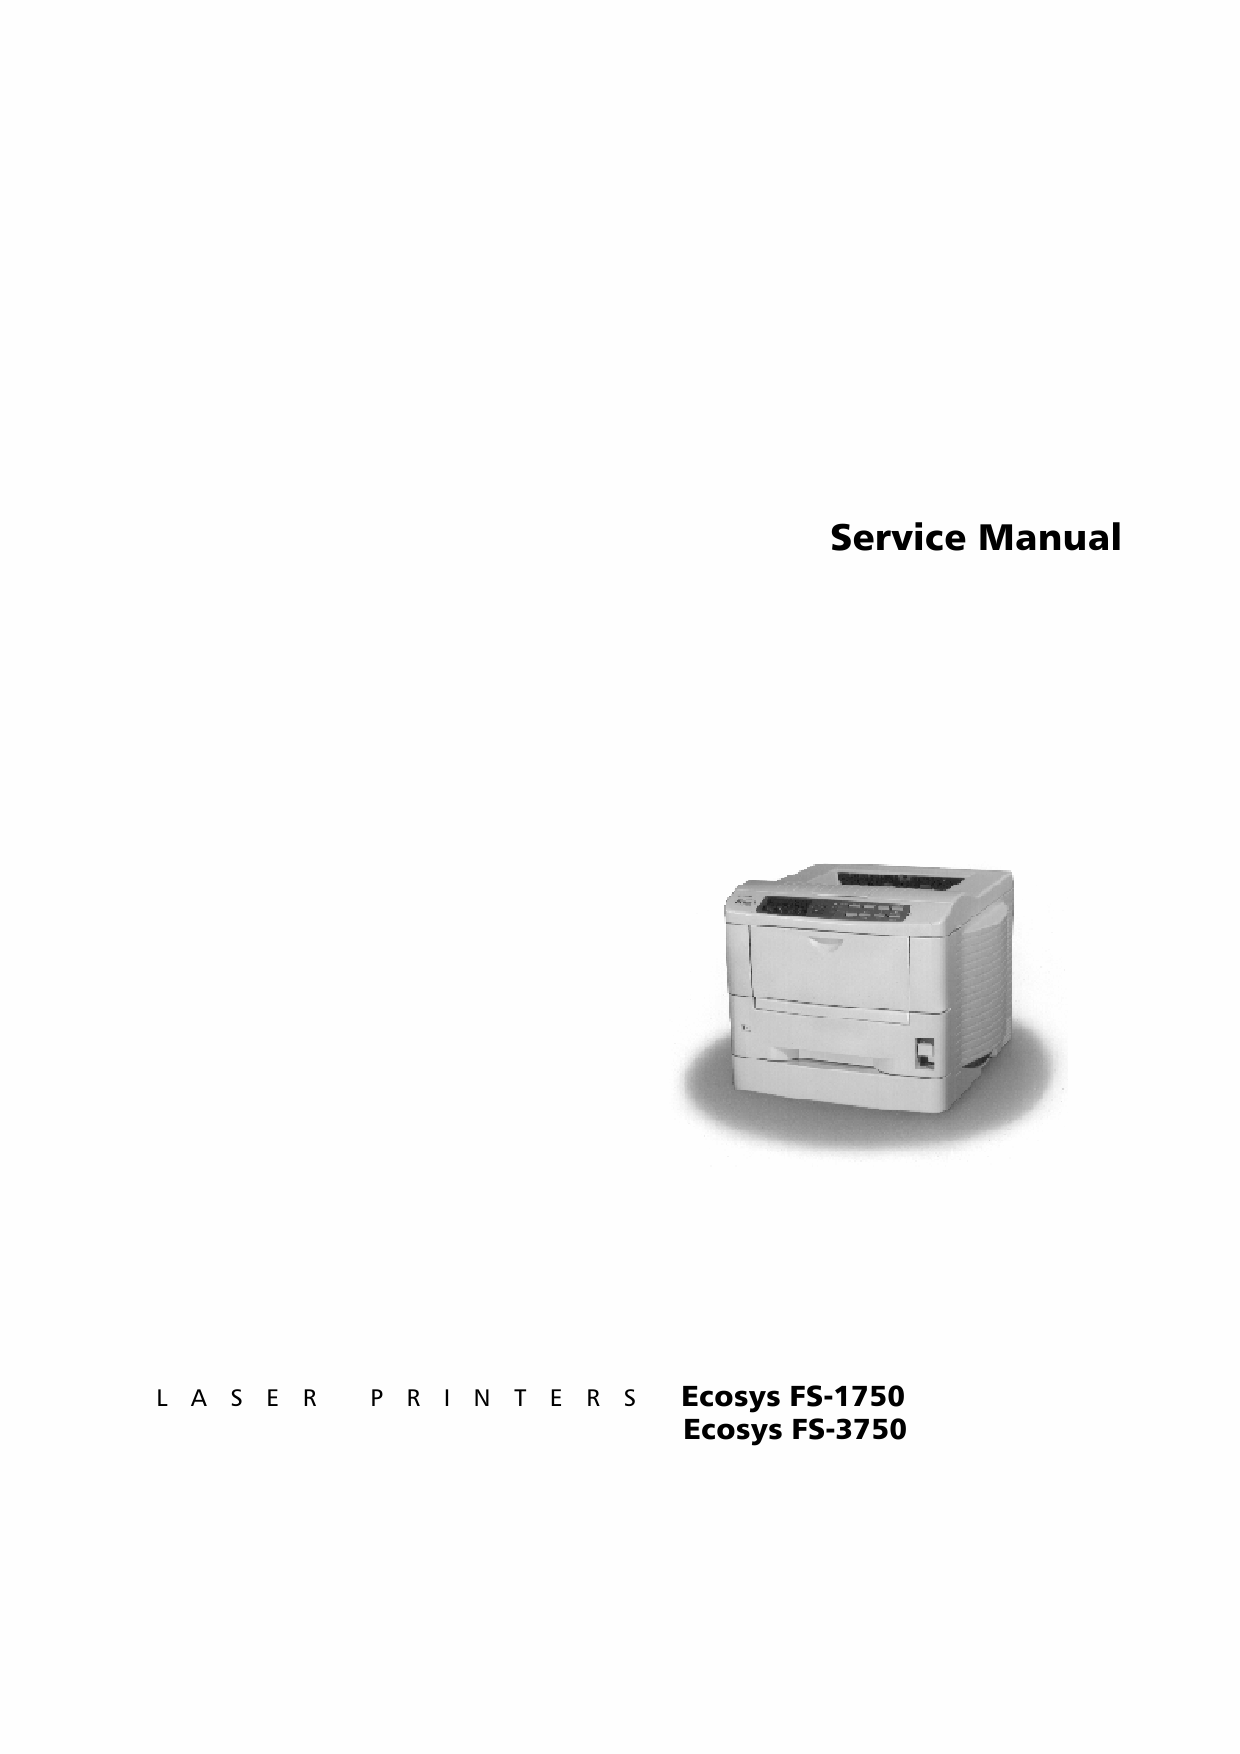 KYOCERA LaserPrinter FS-1750 3750 Parts and Service Manual-1